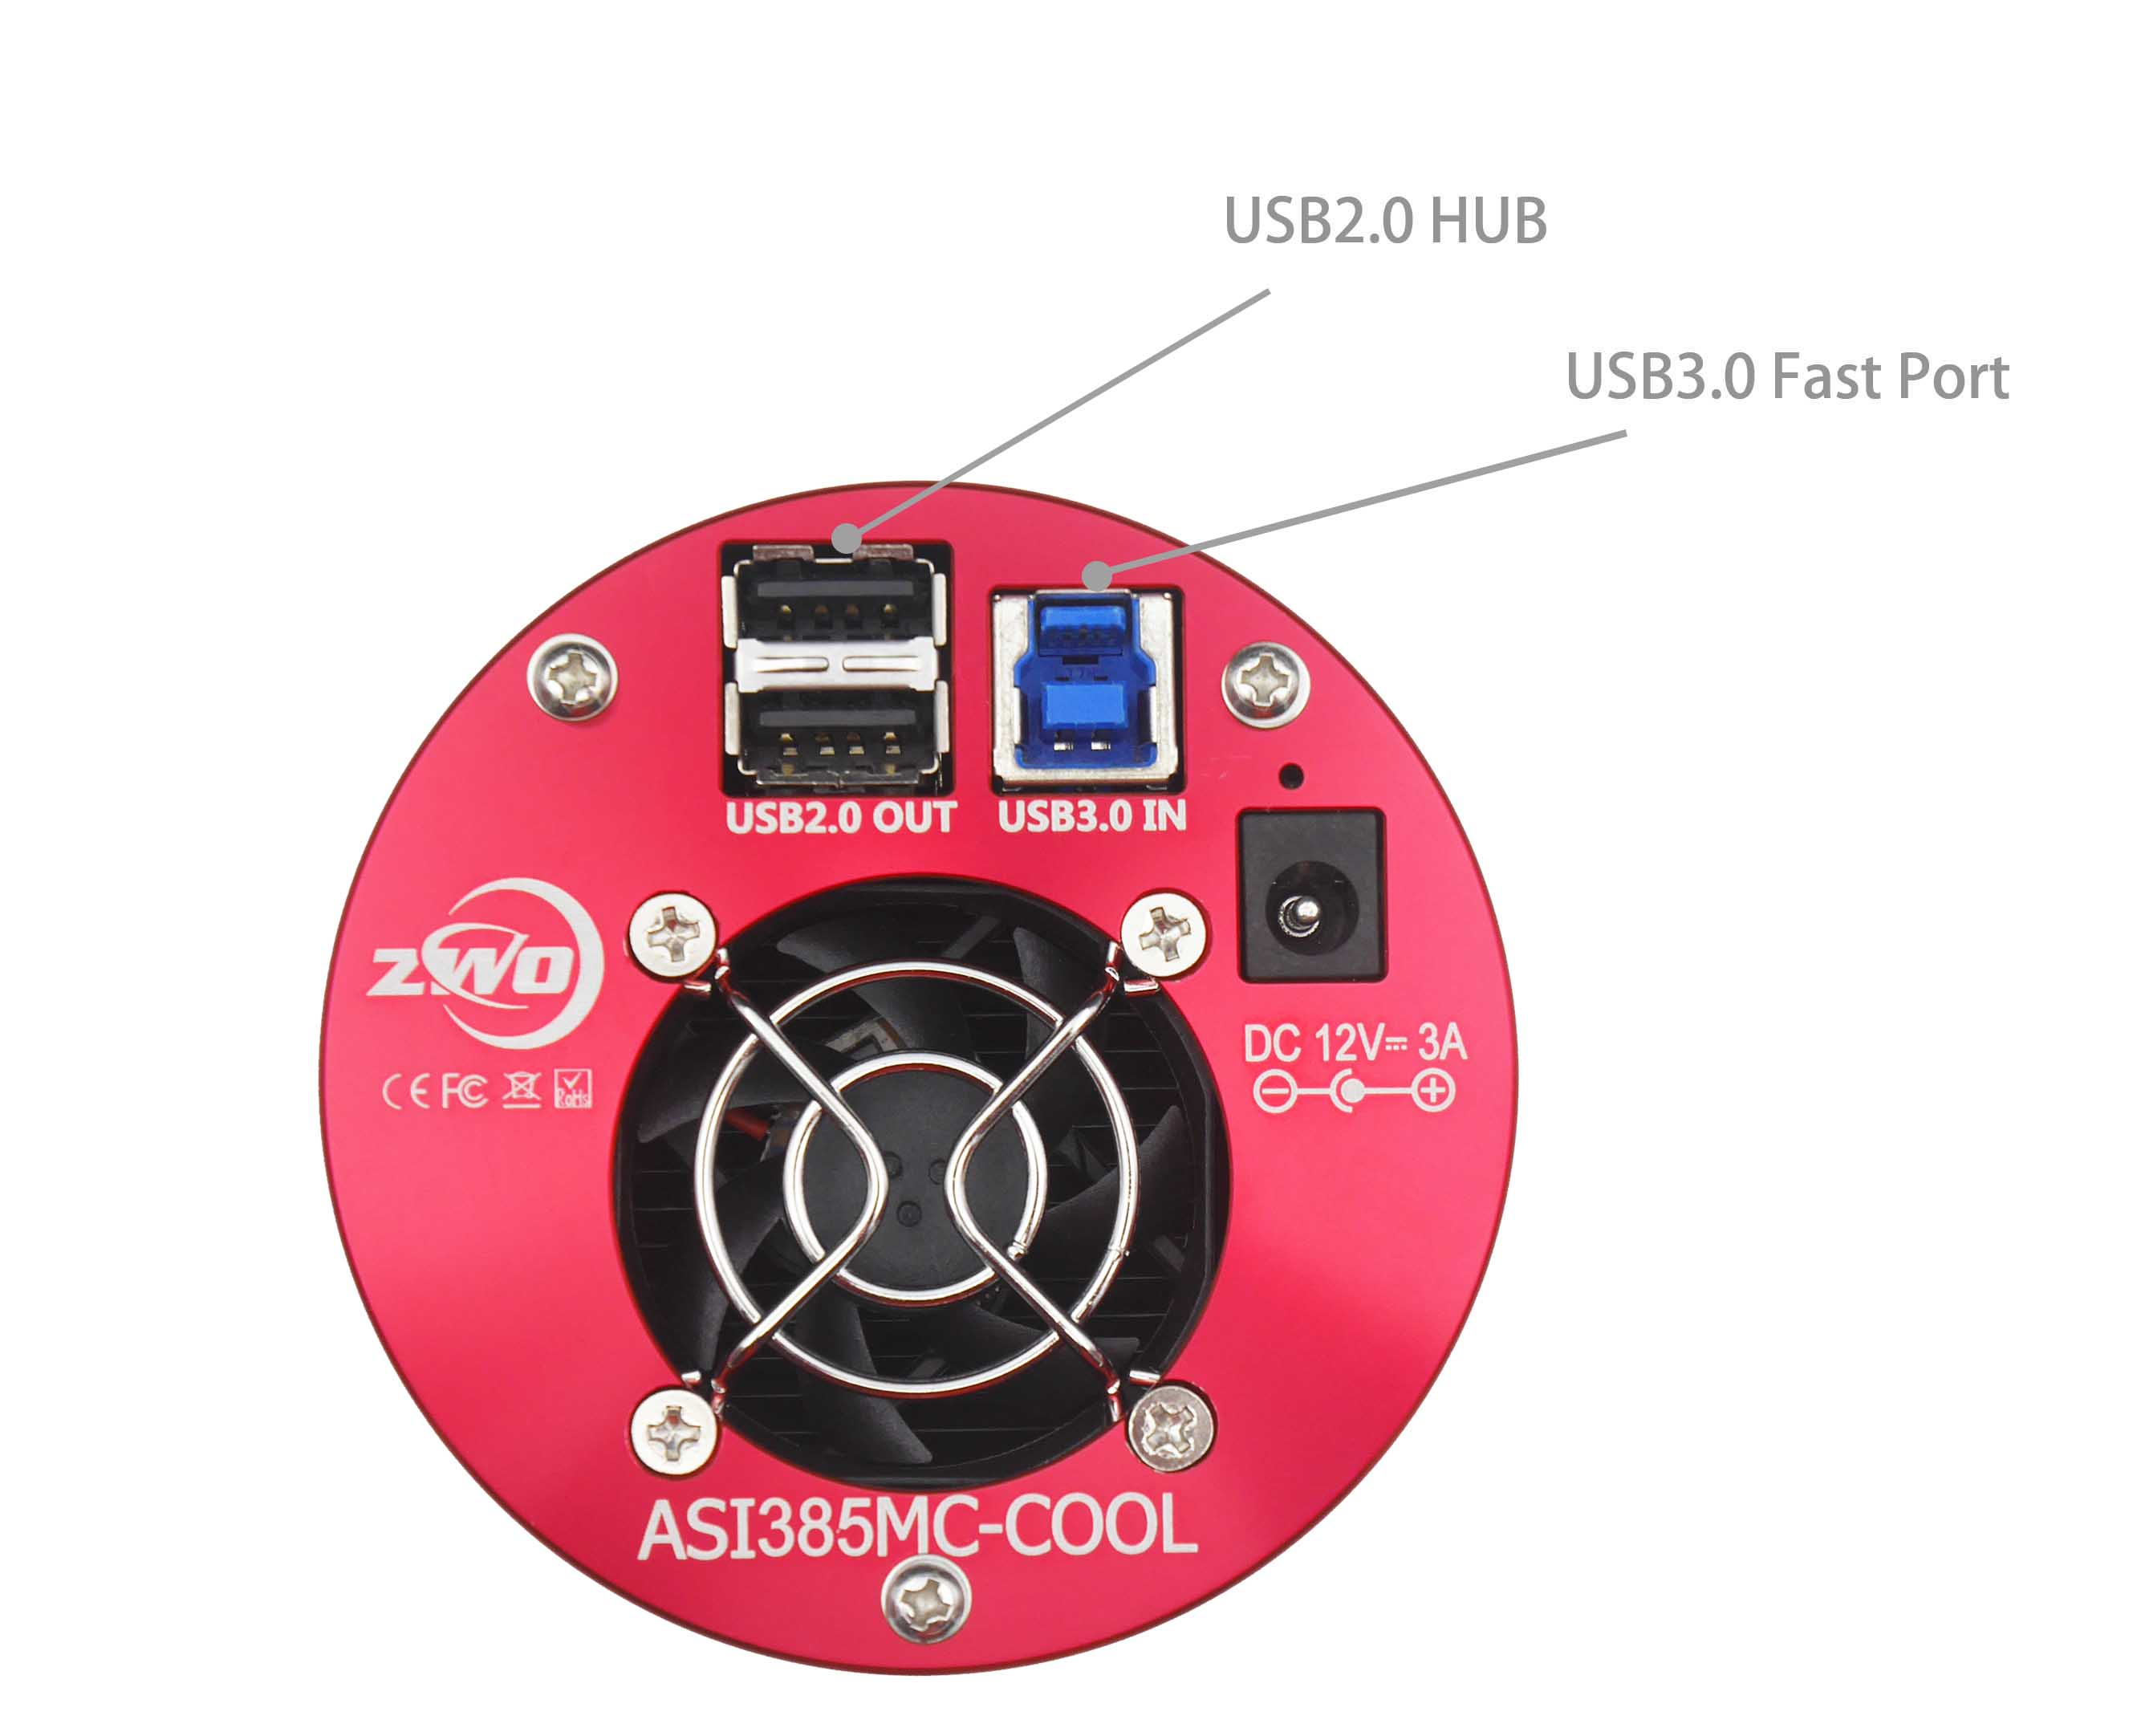 Asi385mc Cool Color Zwo Asi To Deliver More Current Connect An External Power Source And There Are 2 Short 05m Usb20 Cable Come With The Of Hub From Supply If You It